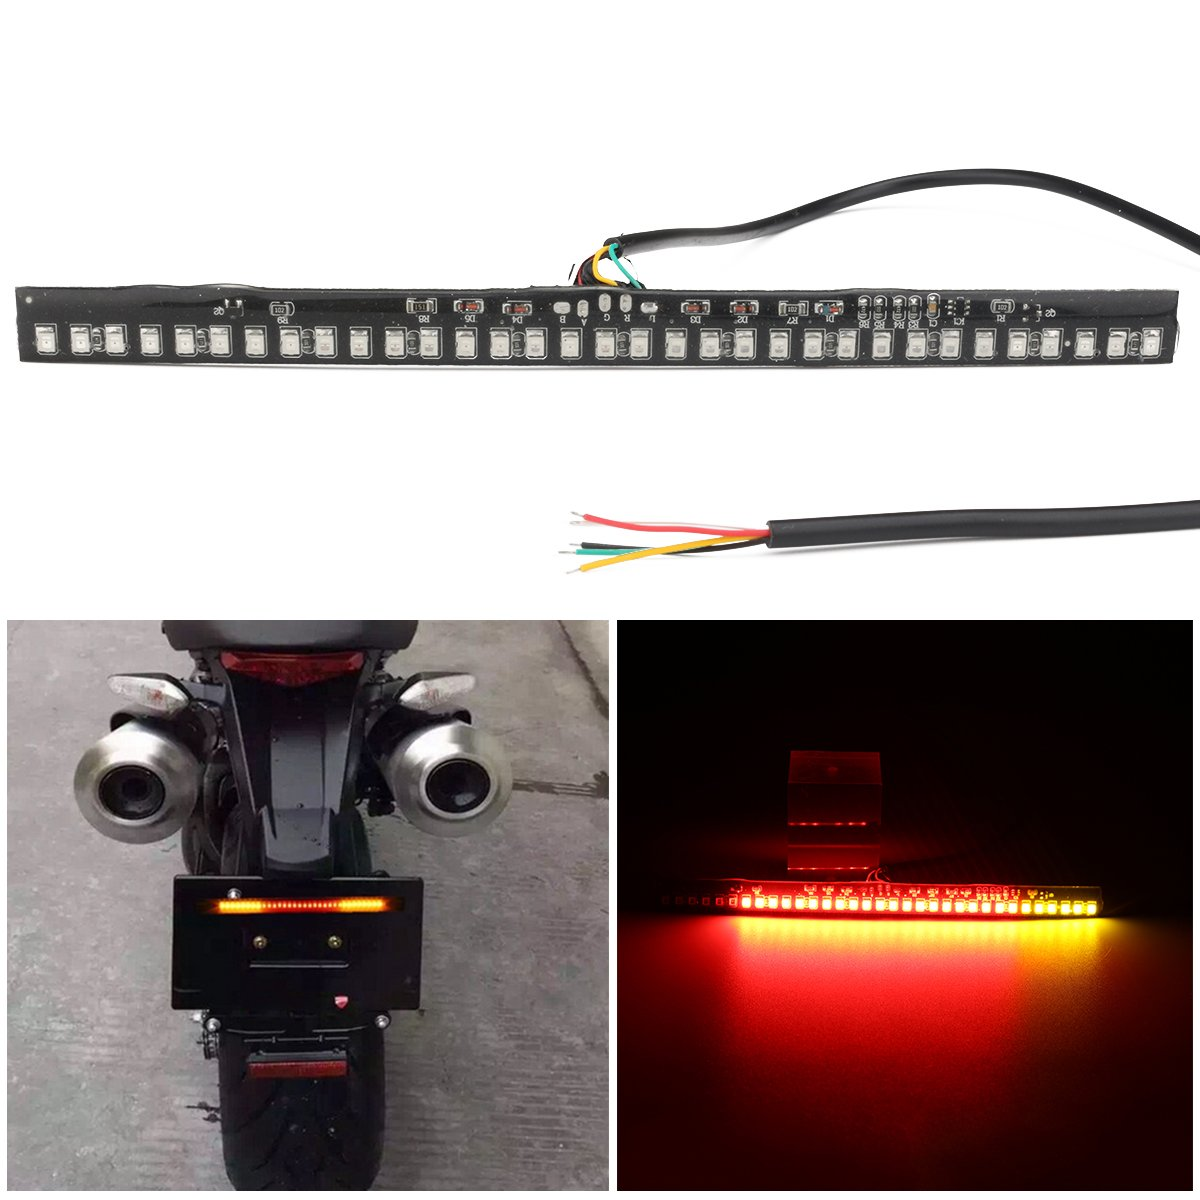 KOYA Waterproof Universal 33-2835 SMD LED Motorcycle Flexible Strobe Light Strip Turn Signal Tail Brake and License Plate Led Light Strips (ADP33)